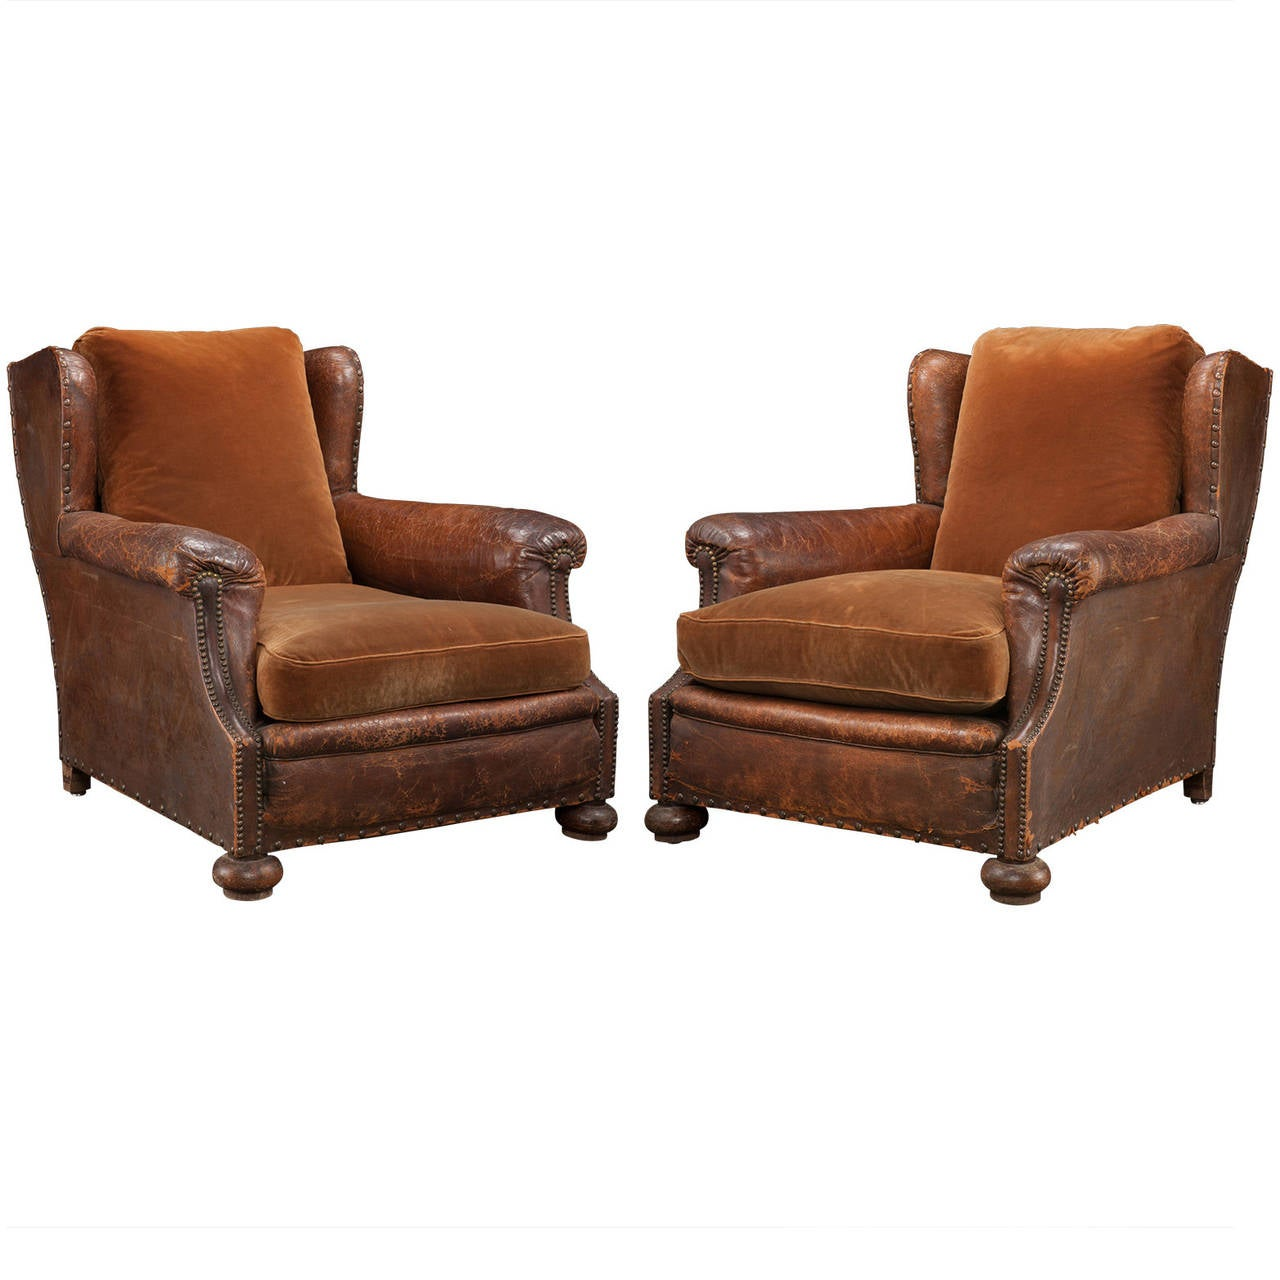 Very comfortable pair of 1950s french reclining leather armchairs - Pair Of Leather And Velvet Lounge Chairs 1